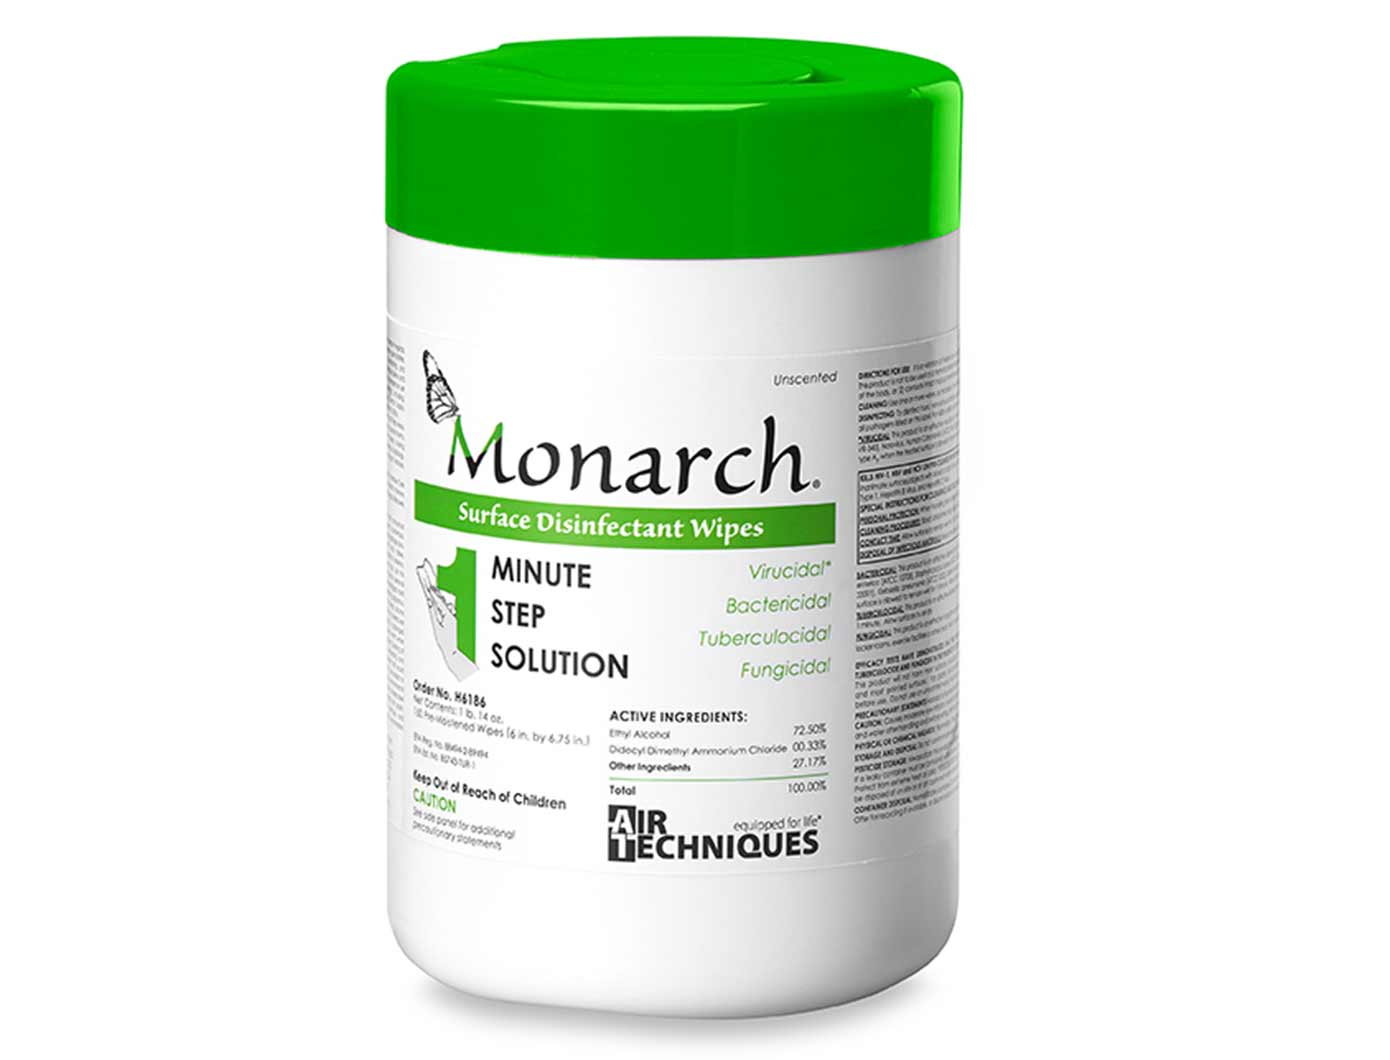 Monarch Surface Disinfectant Wipes_2